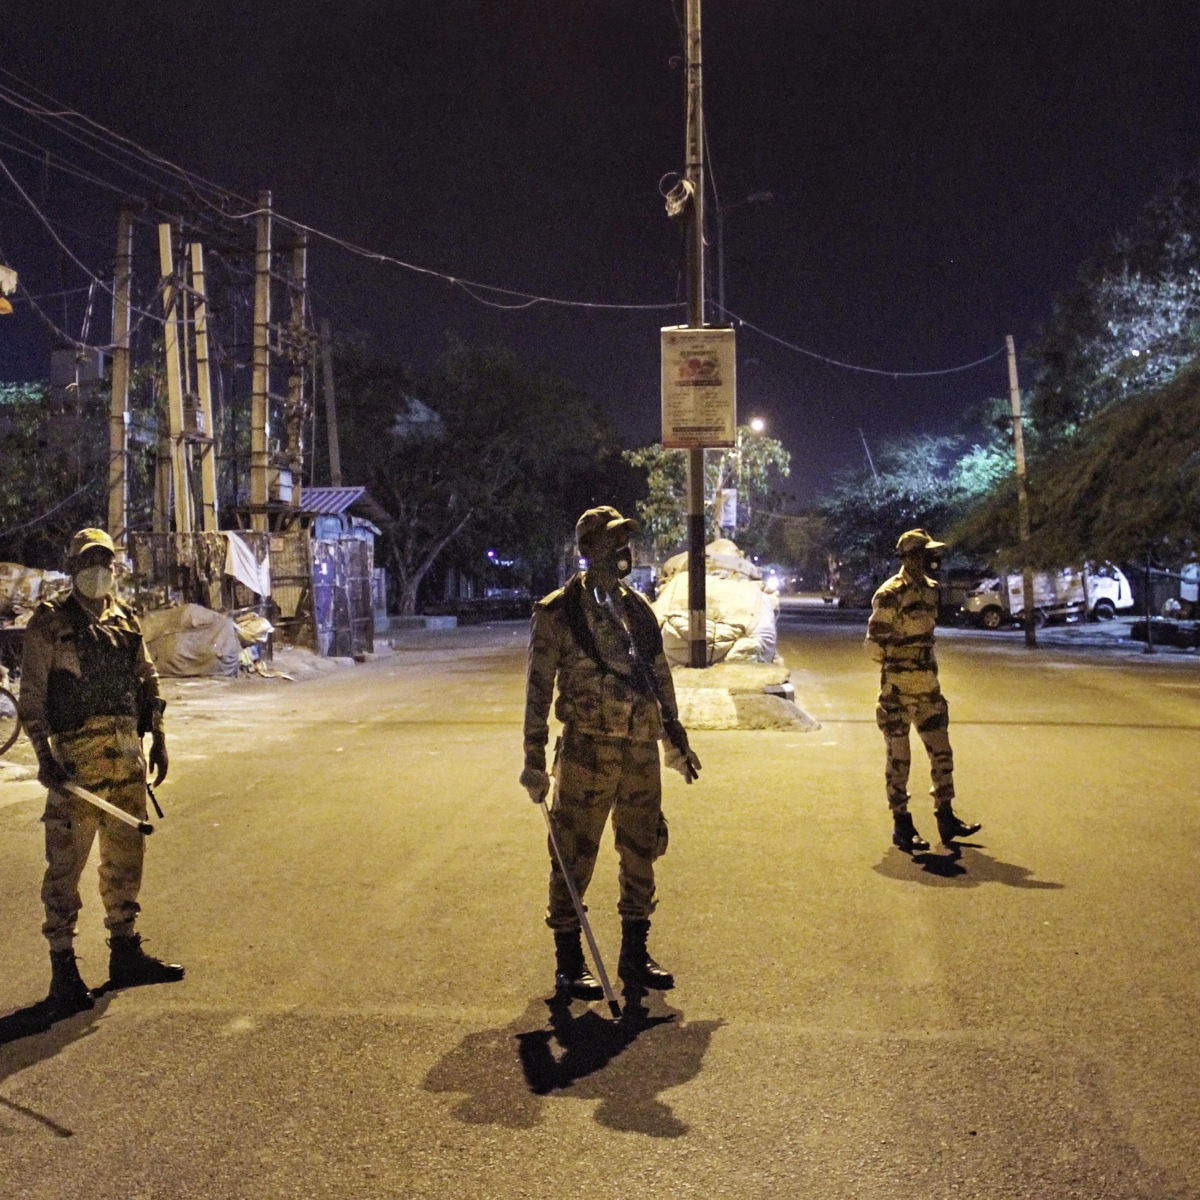 COVID-19 in Karnataka: 'Night Corona Curfew' imposed in Bengaluru, 6 other cities from April 10 to April 20